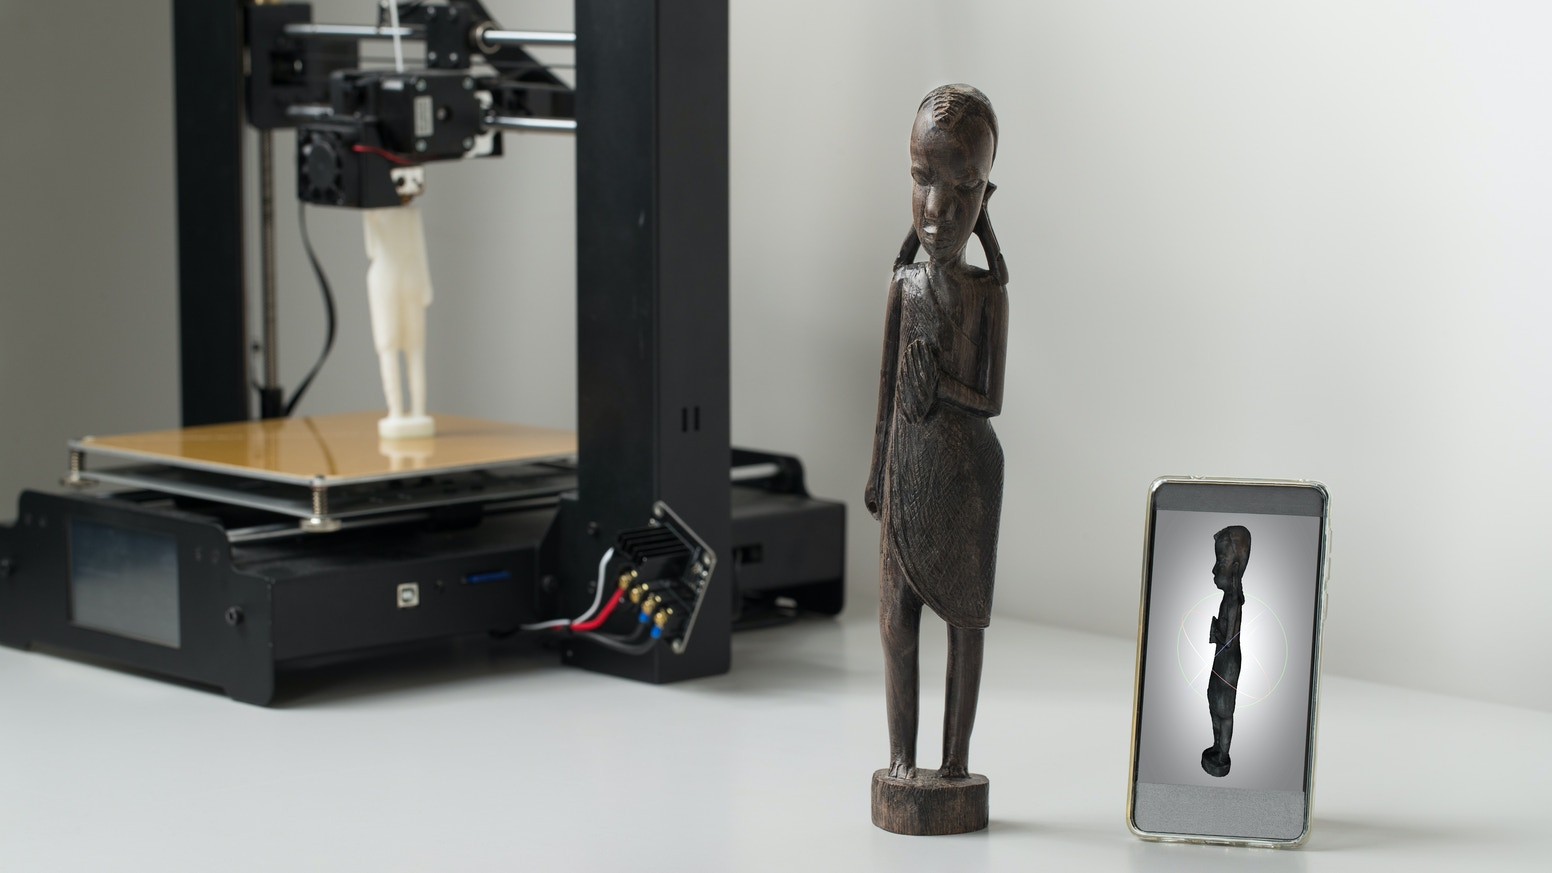 First new 3D scanning technology in over 10 years. Easy to use. Accurate to 0.1mm. Precise 3D models of any material.